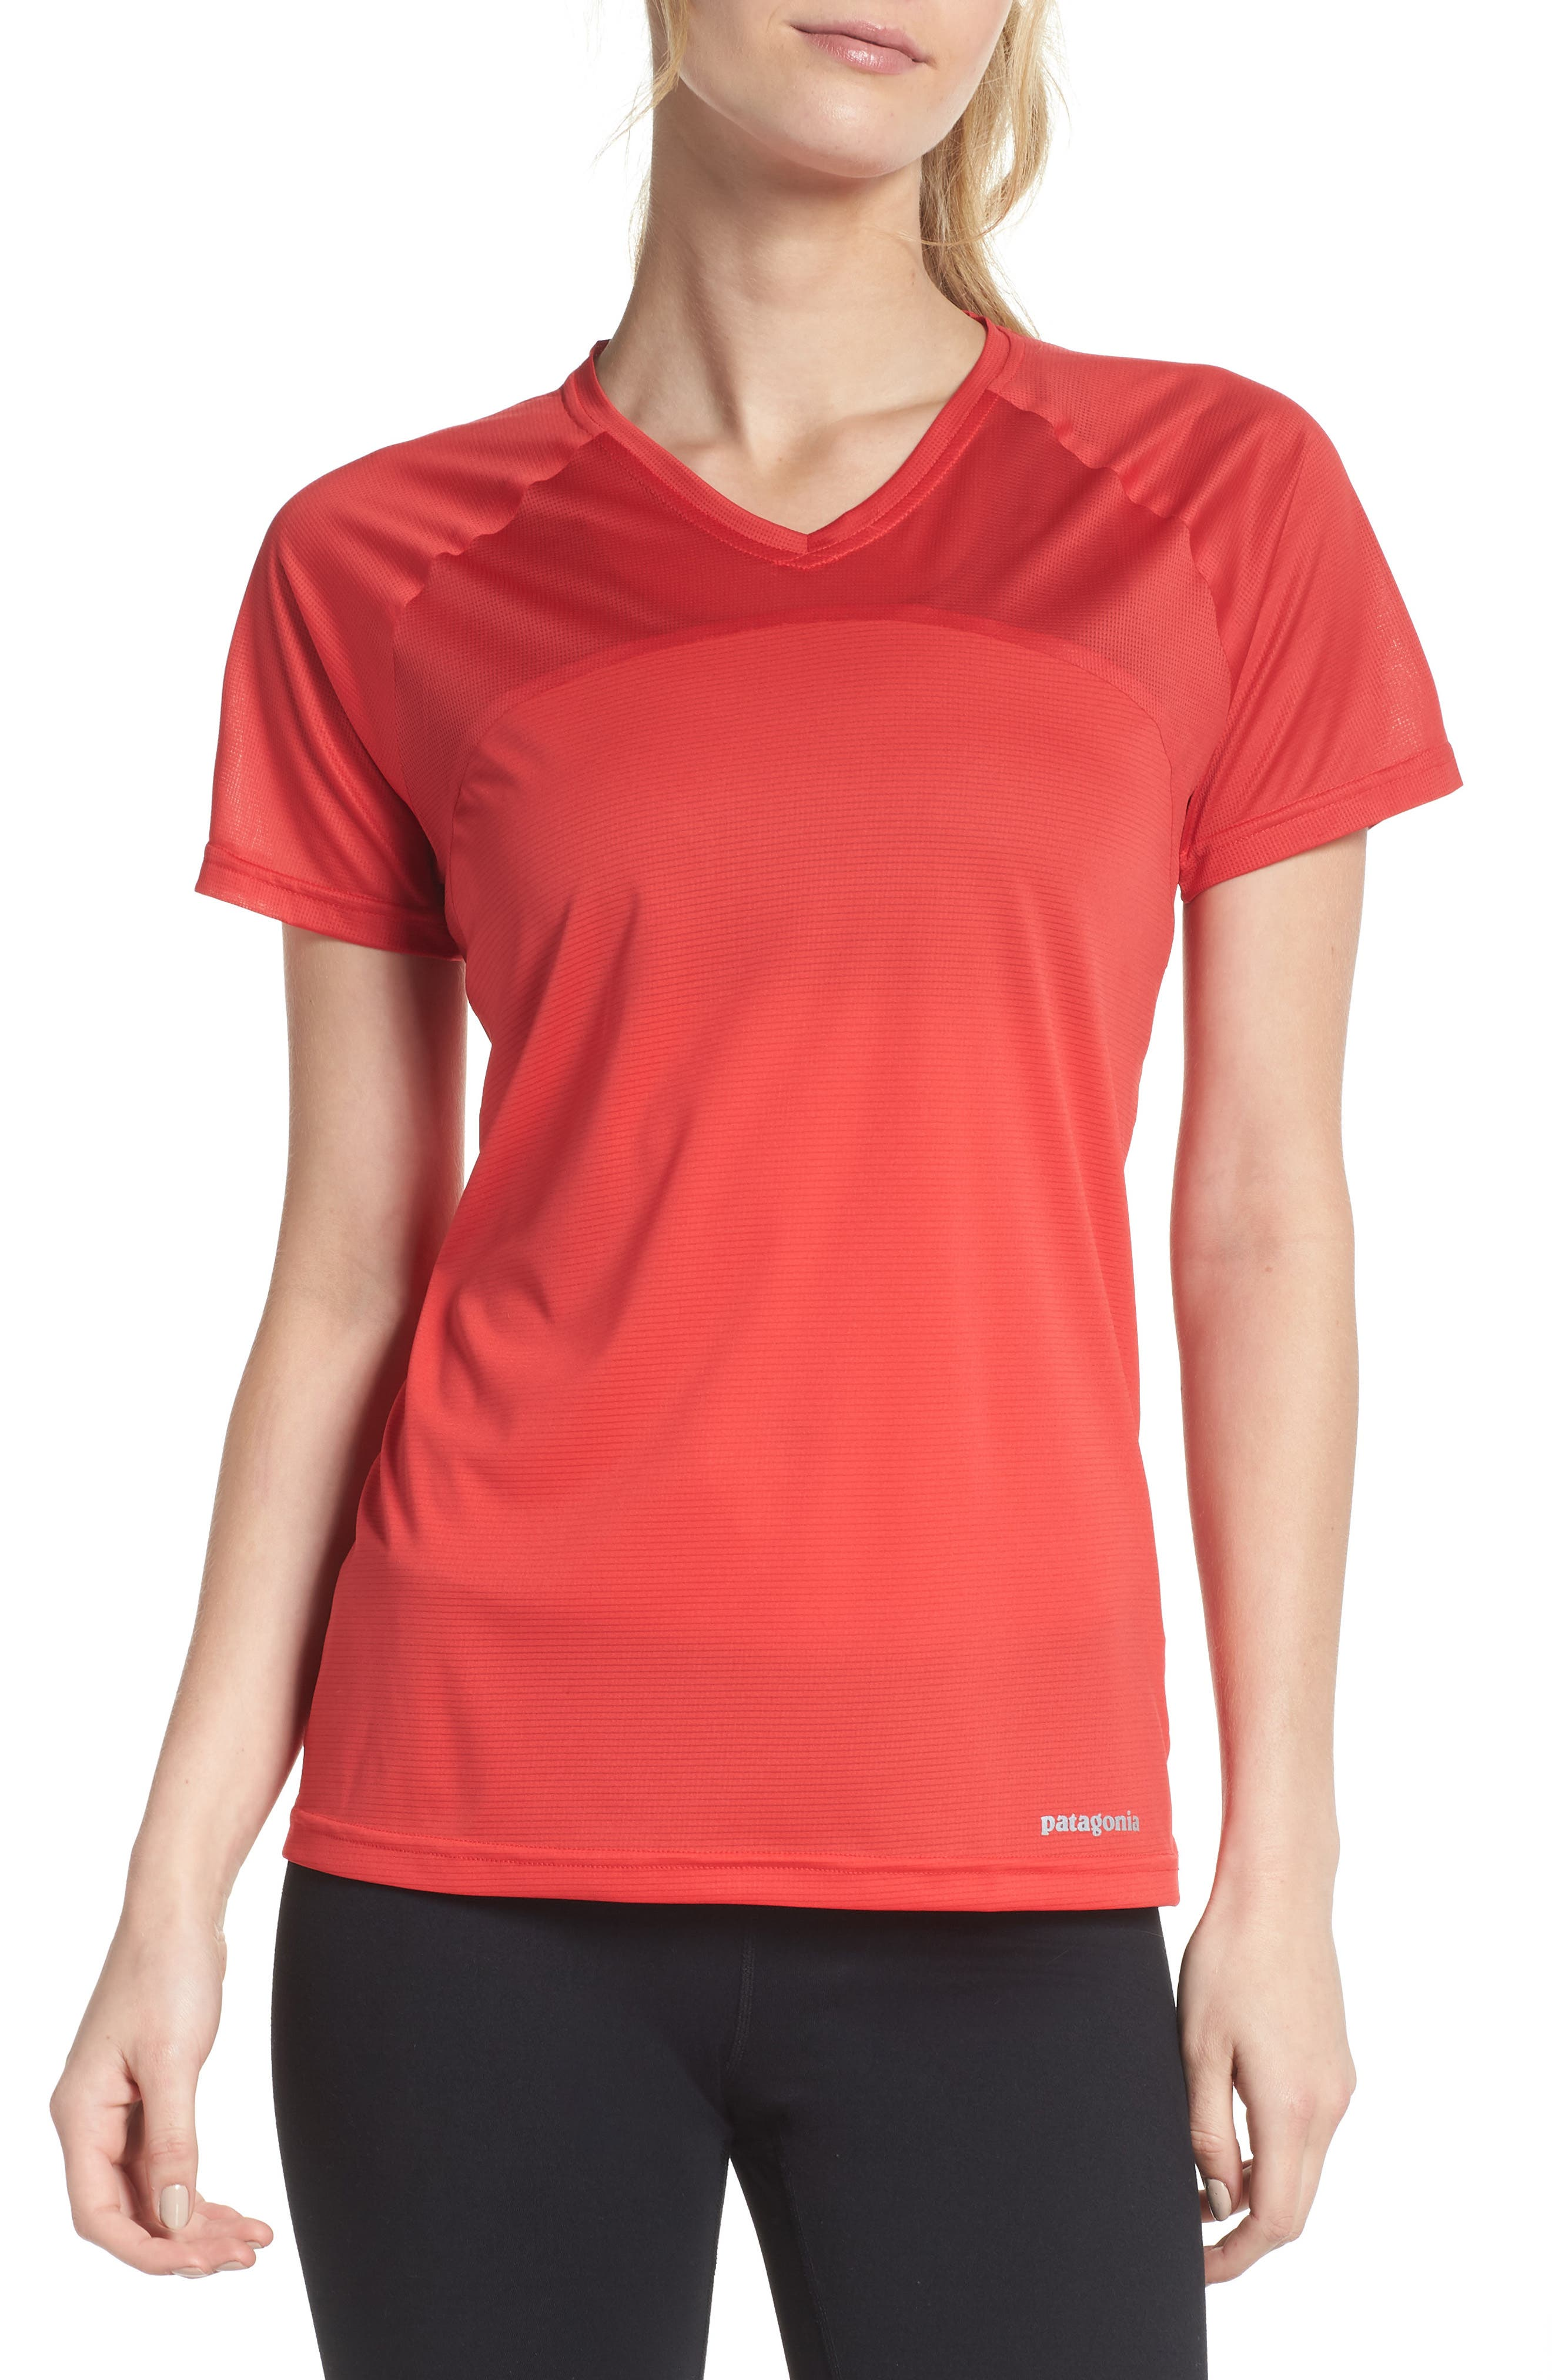 Windchaser Shirt,                         Main,                         color, Maraschino